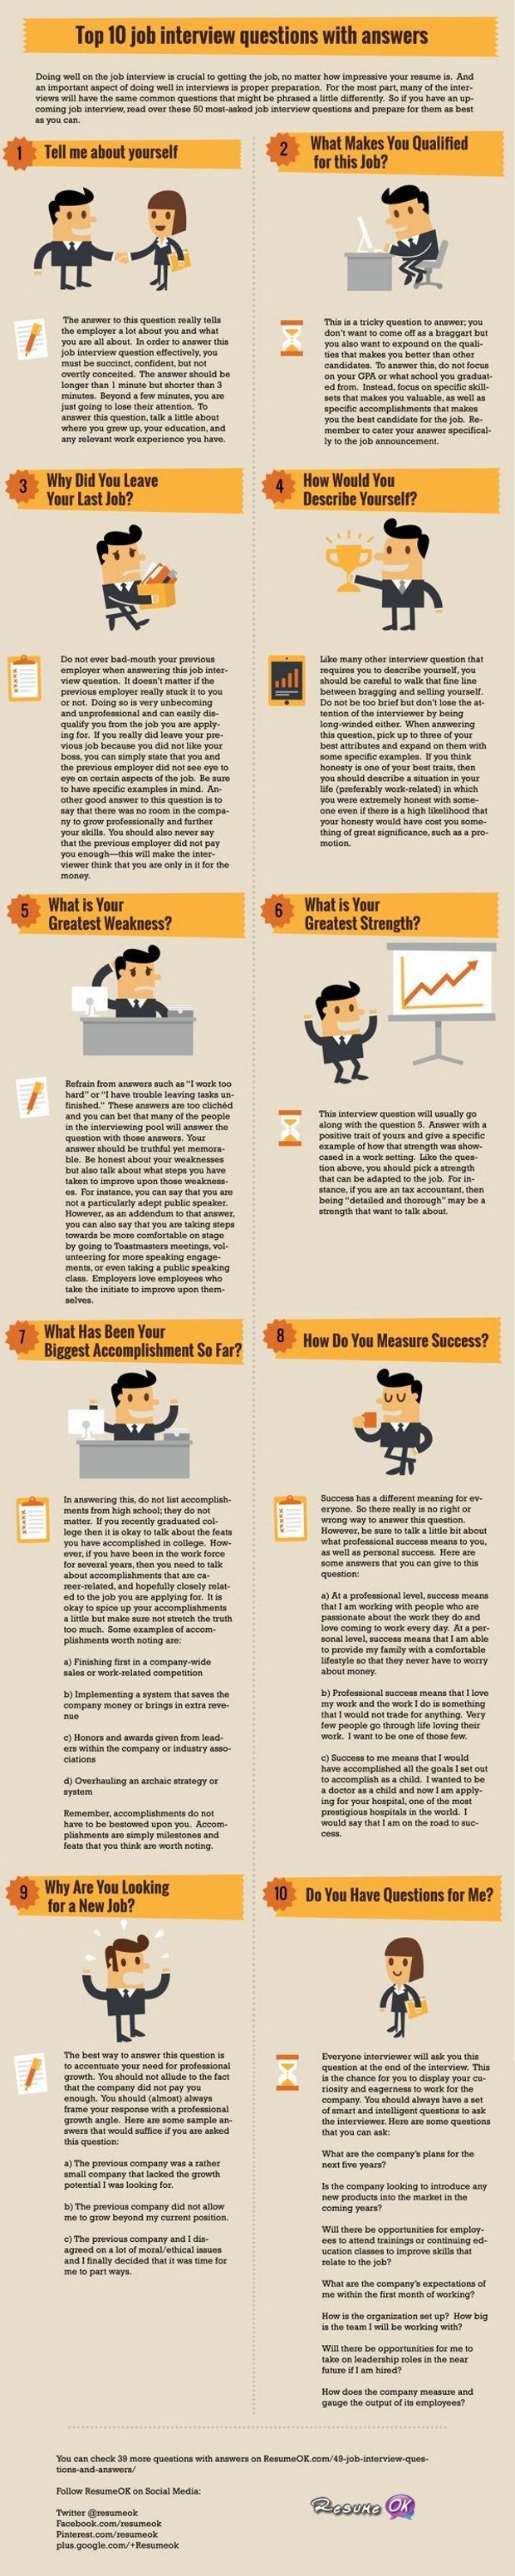 15 must see common job interview questions pins job interview the 10 most common job interview questions and how to answer